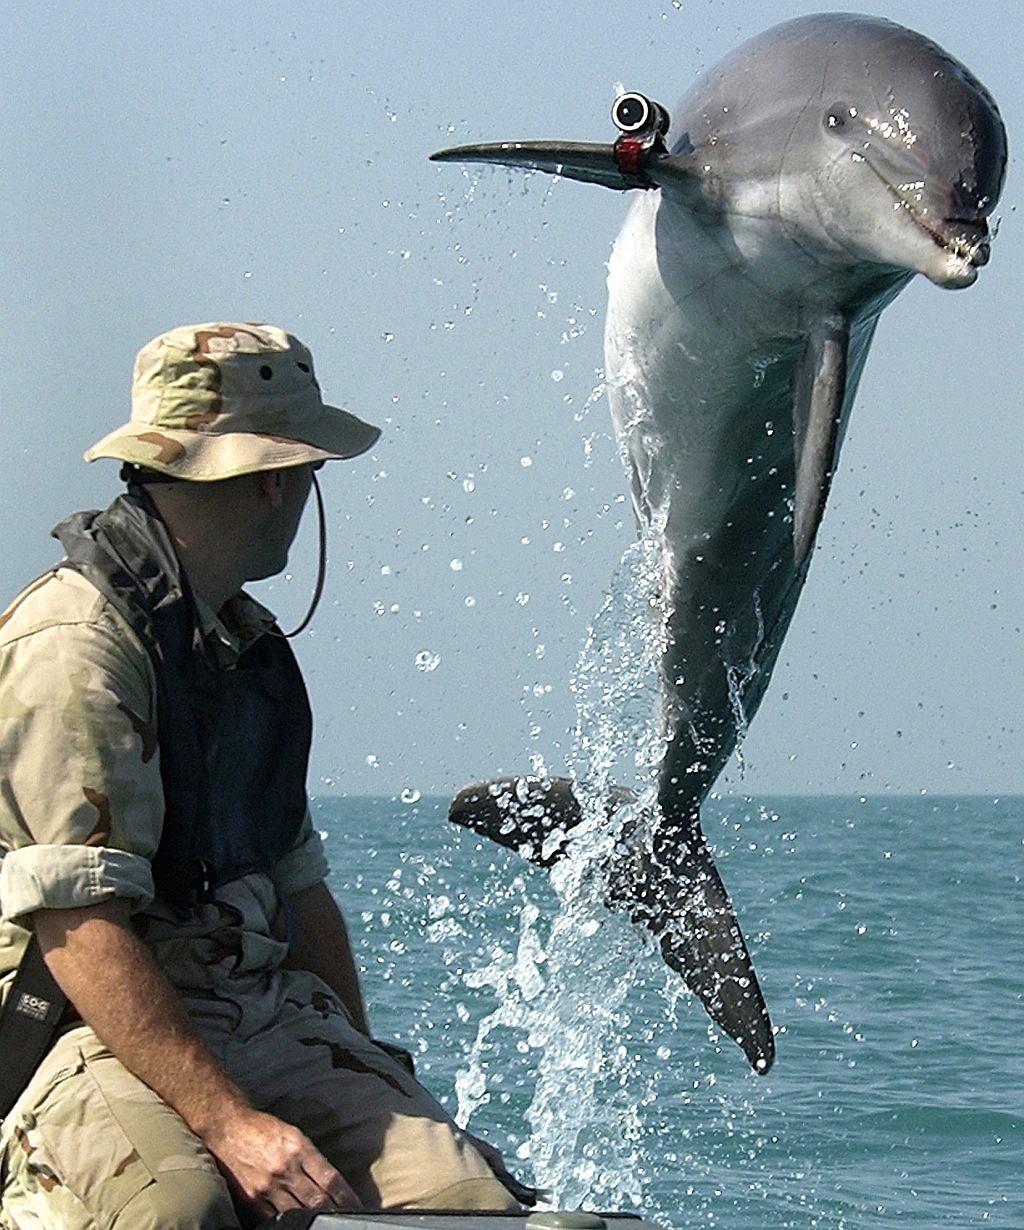 K-Dog, a Bottlenose Dolphin (Tursiops truncatus), Leaps Out of the Water While Training in the Arabian Gulf. Attached to the Bottle-nosed Dolphin's Pectoral Fin is a Tracking Device. March 18, 2003, Central Command Area of Responsibility. Photo Credit: Photographer's Mate 1st Class Brien Aho, Navy NewsStand - Eye on the Fleet Photo Gallery (http://www.news.navy.mil/view_photos.asp, 030318-N-5319A-002), United States Navy (USN, http://www.navy.mil), United States Department of Defense (DoD, http://www.DefenseLink.mil or http://www.dod.gov), Government of the United States of America (USA).